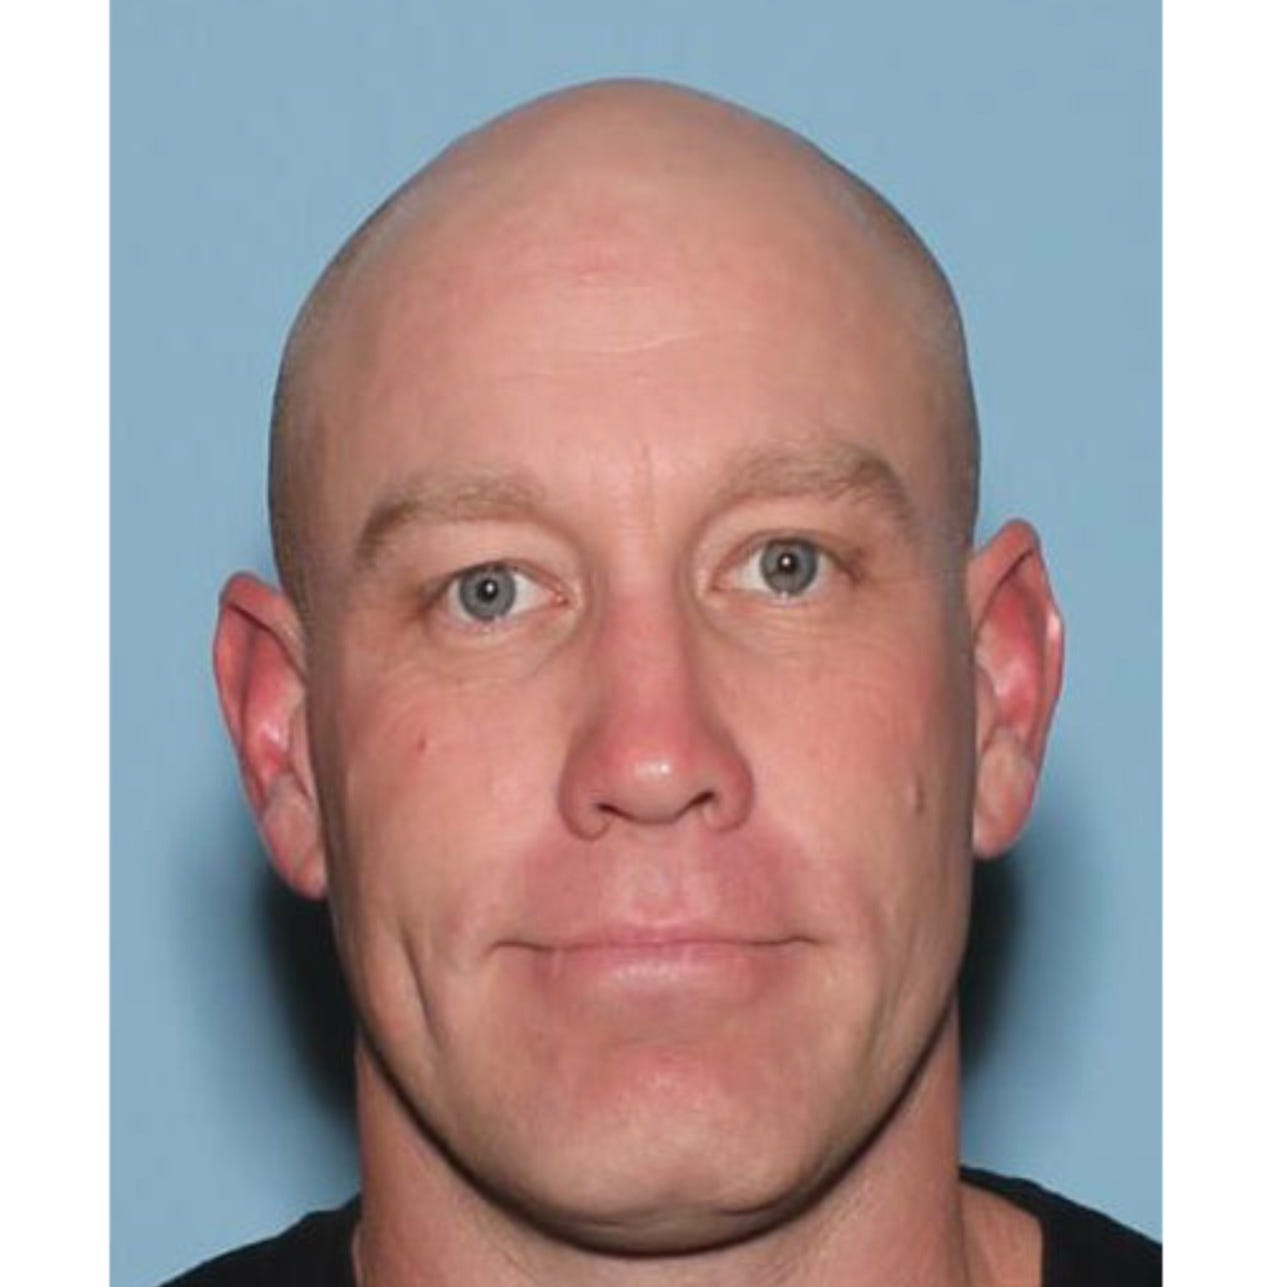 Suspect sought in severe beating of man at Verde River campsite